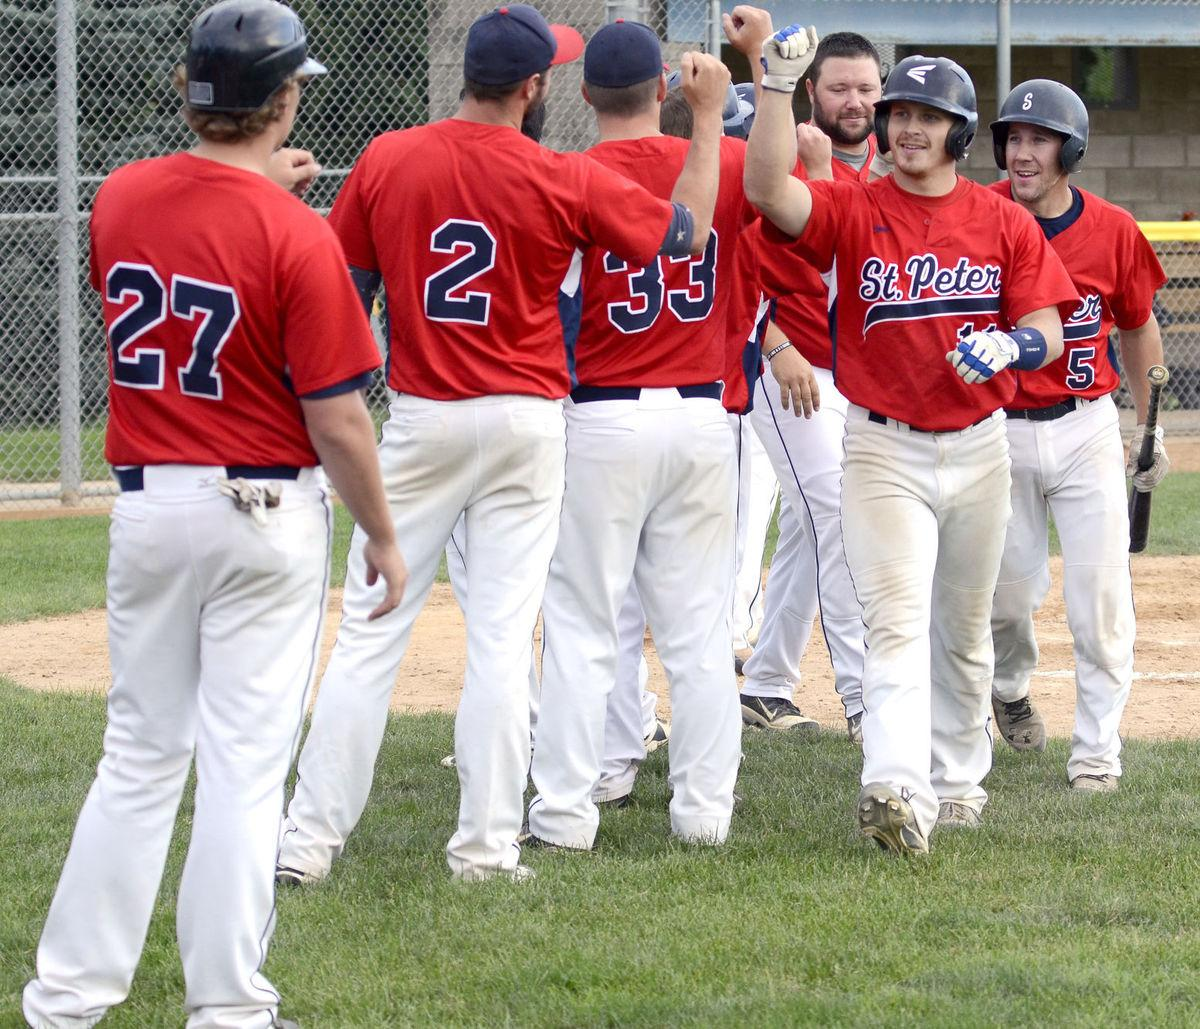 Saints Power Past Braves 10-3 To Make State For 4th Straight Year